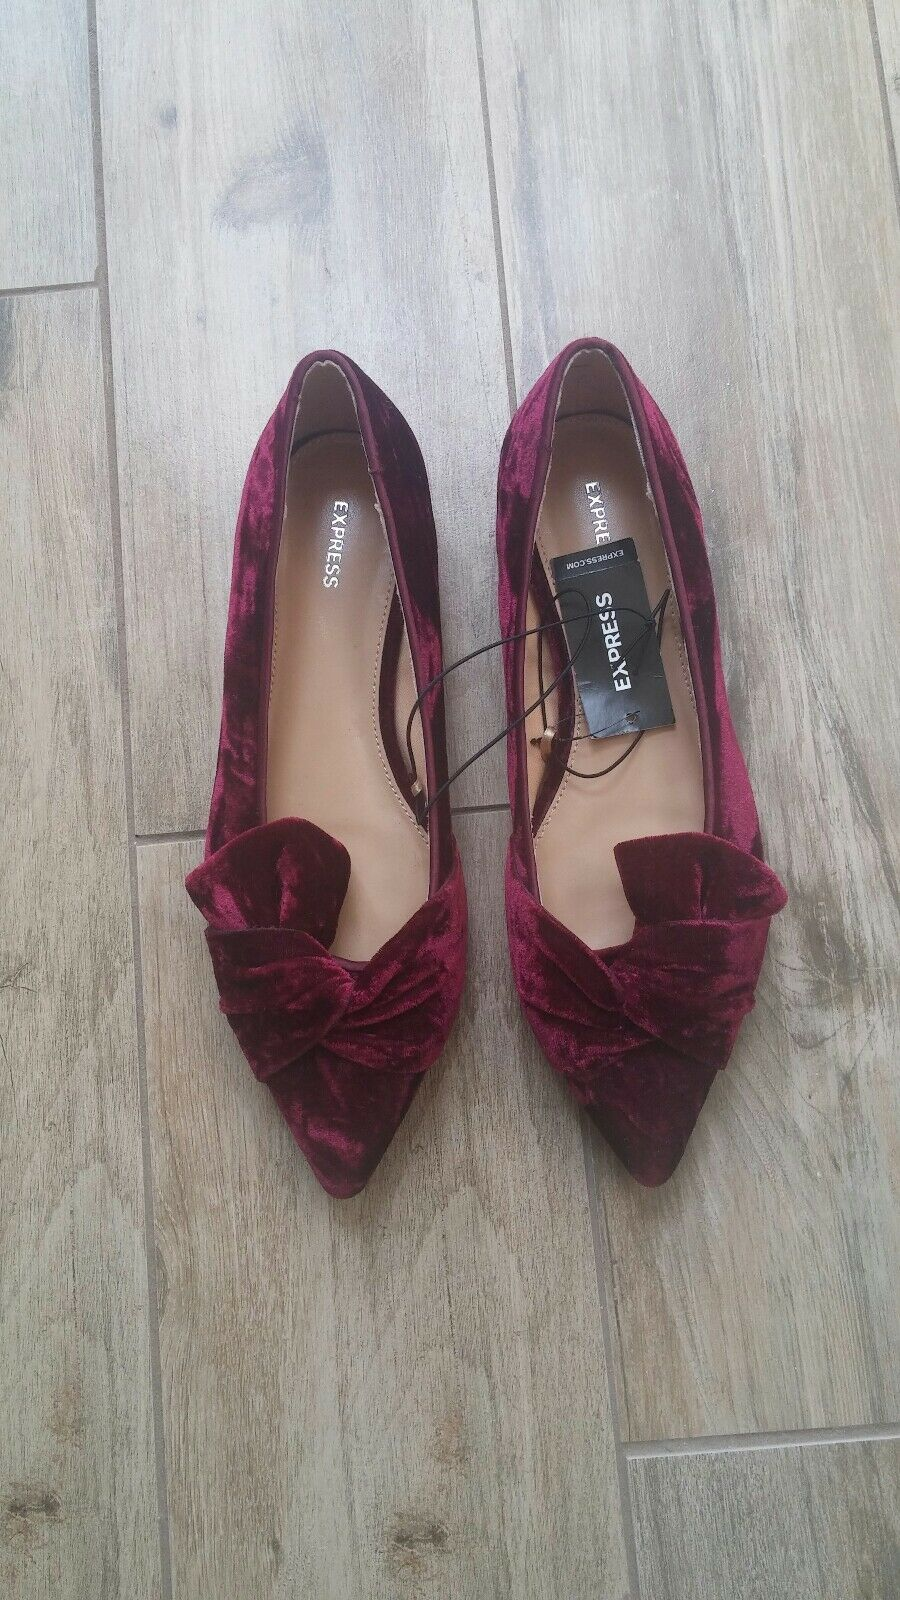 Express Women's Burgundy Slip On Flats shoes Size 8 New With Tag Pointed Toes